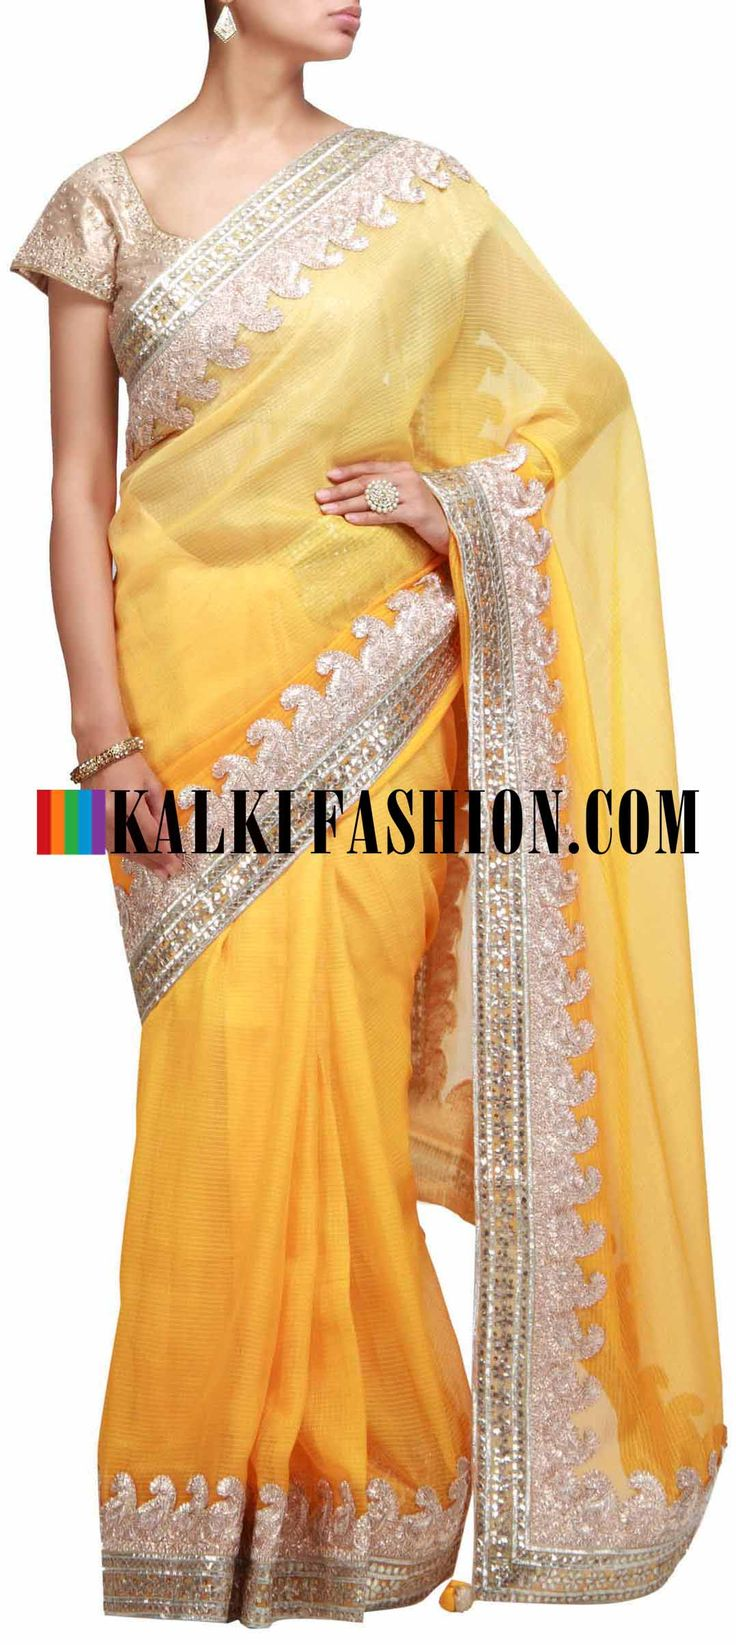 Buy Online from the link below. We ship worldwide (Free Shipping over US$100) http://www.kalkifashion.com/yellow-shaded-saree-with-gotta-patti-embroidery.html Yellow shaded saree with gotta patti embroidery